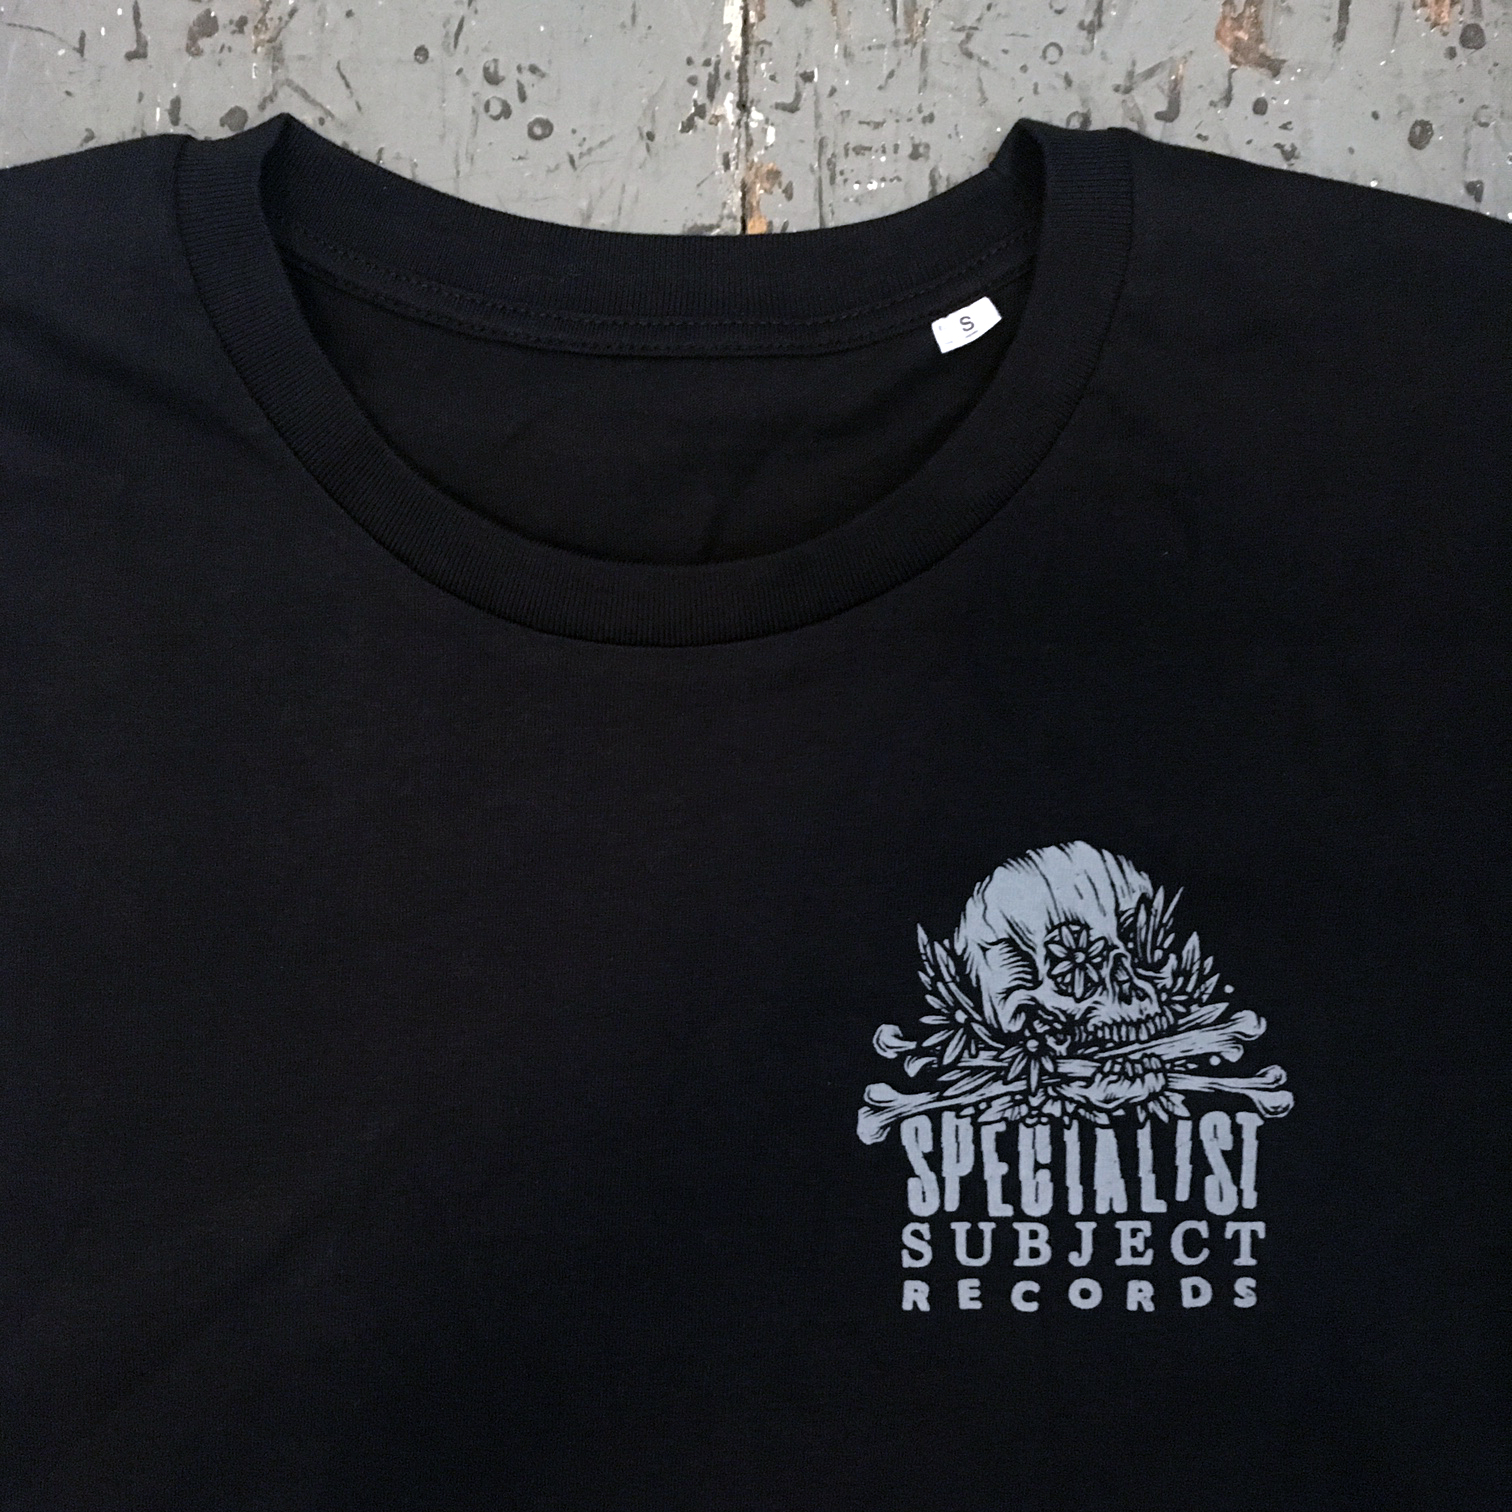 Bury Me With My Records - Drew Millward Organic back print T-shirt